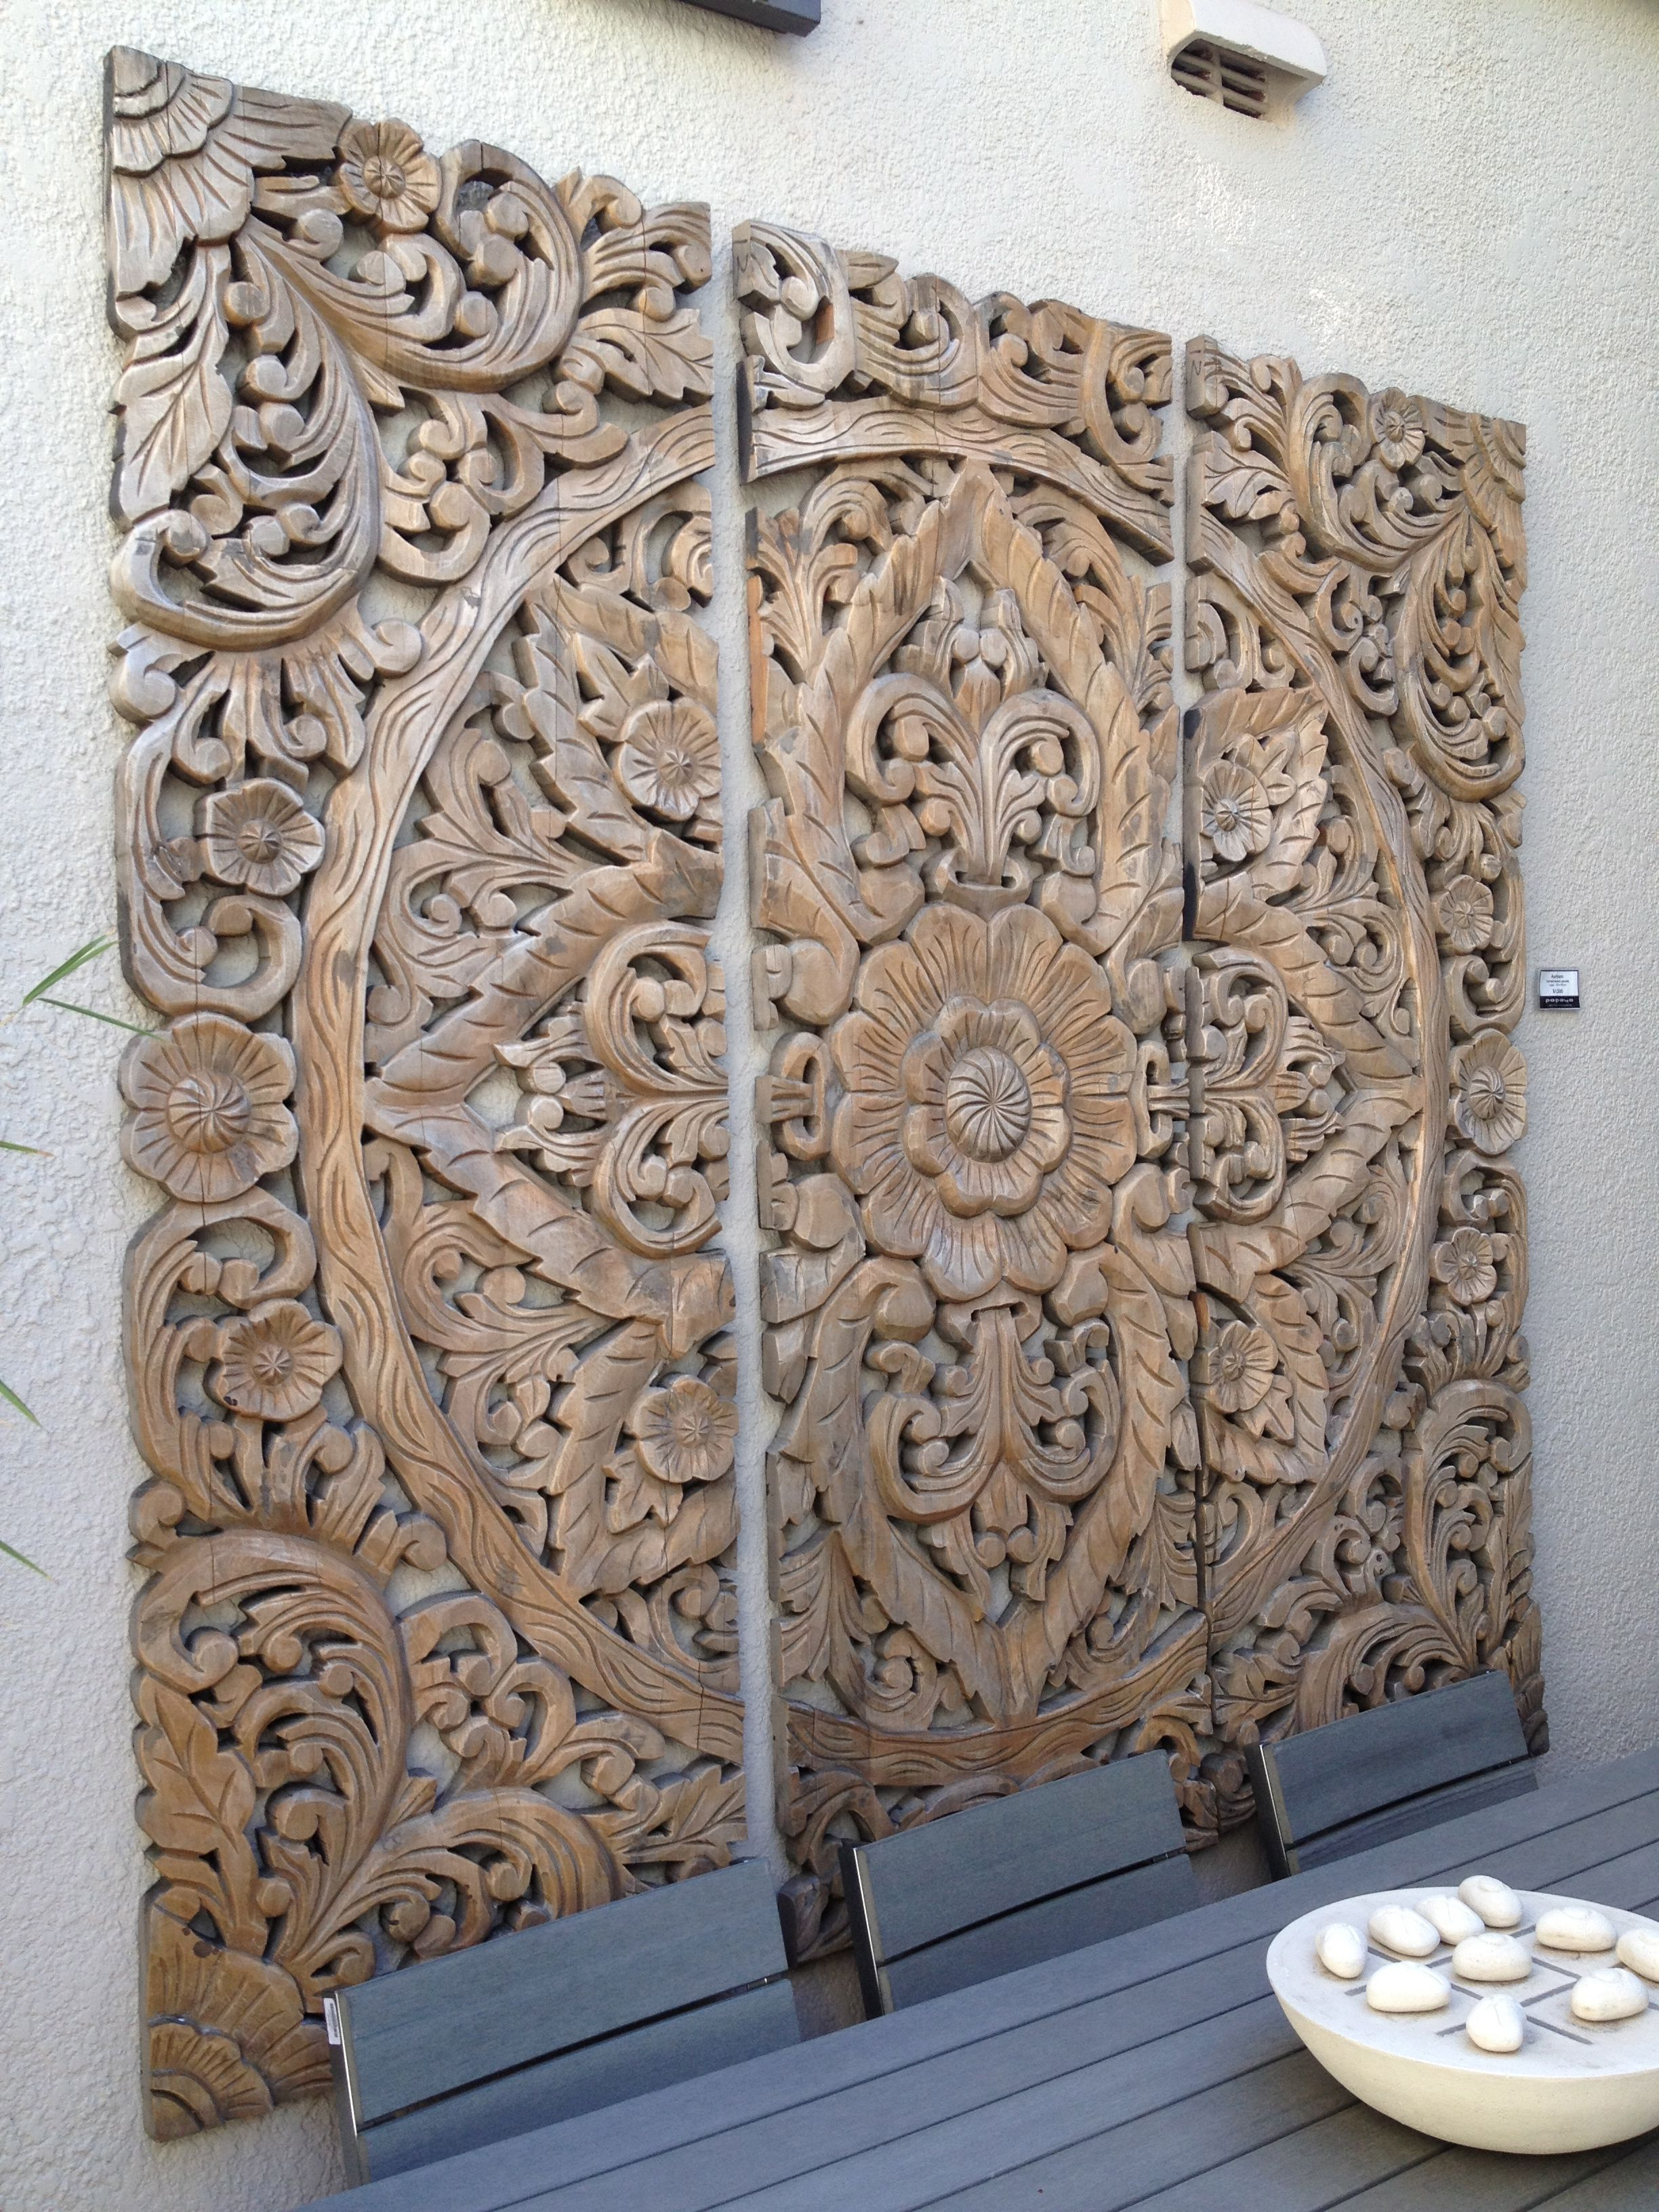 LARGE MORROCAN STYLE CARVED WOOD PANEL WALL ART PICTURE BEAUTIFUL HOME DECOR...